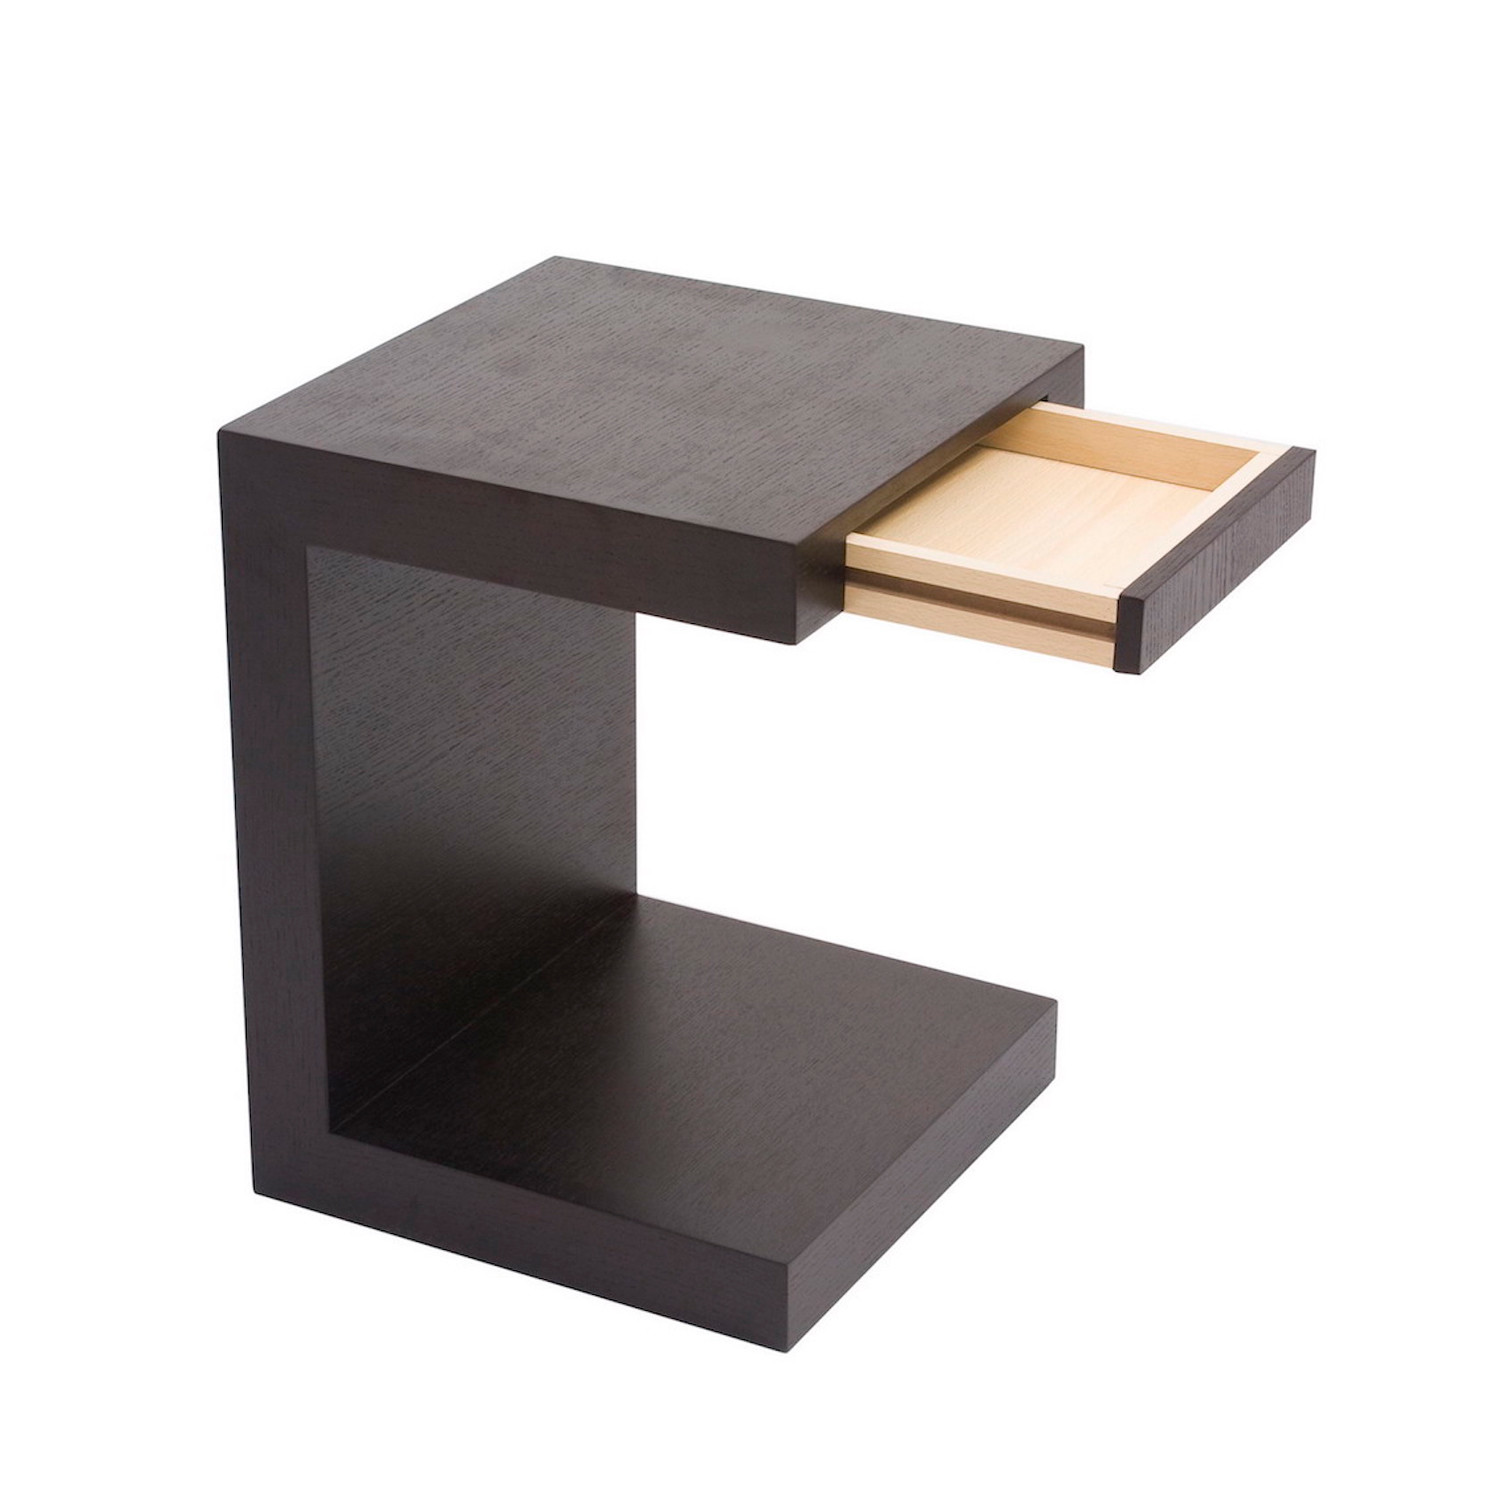 slide in side table walnut l 39 eclectique la touch of. Black Bedroom Furniture Sets. Home Design Ideas